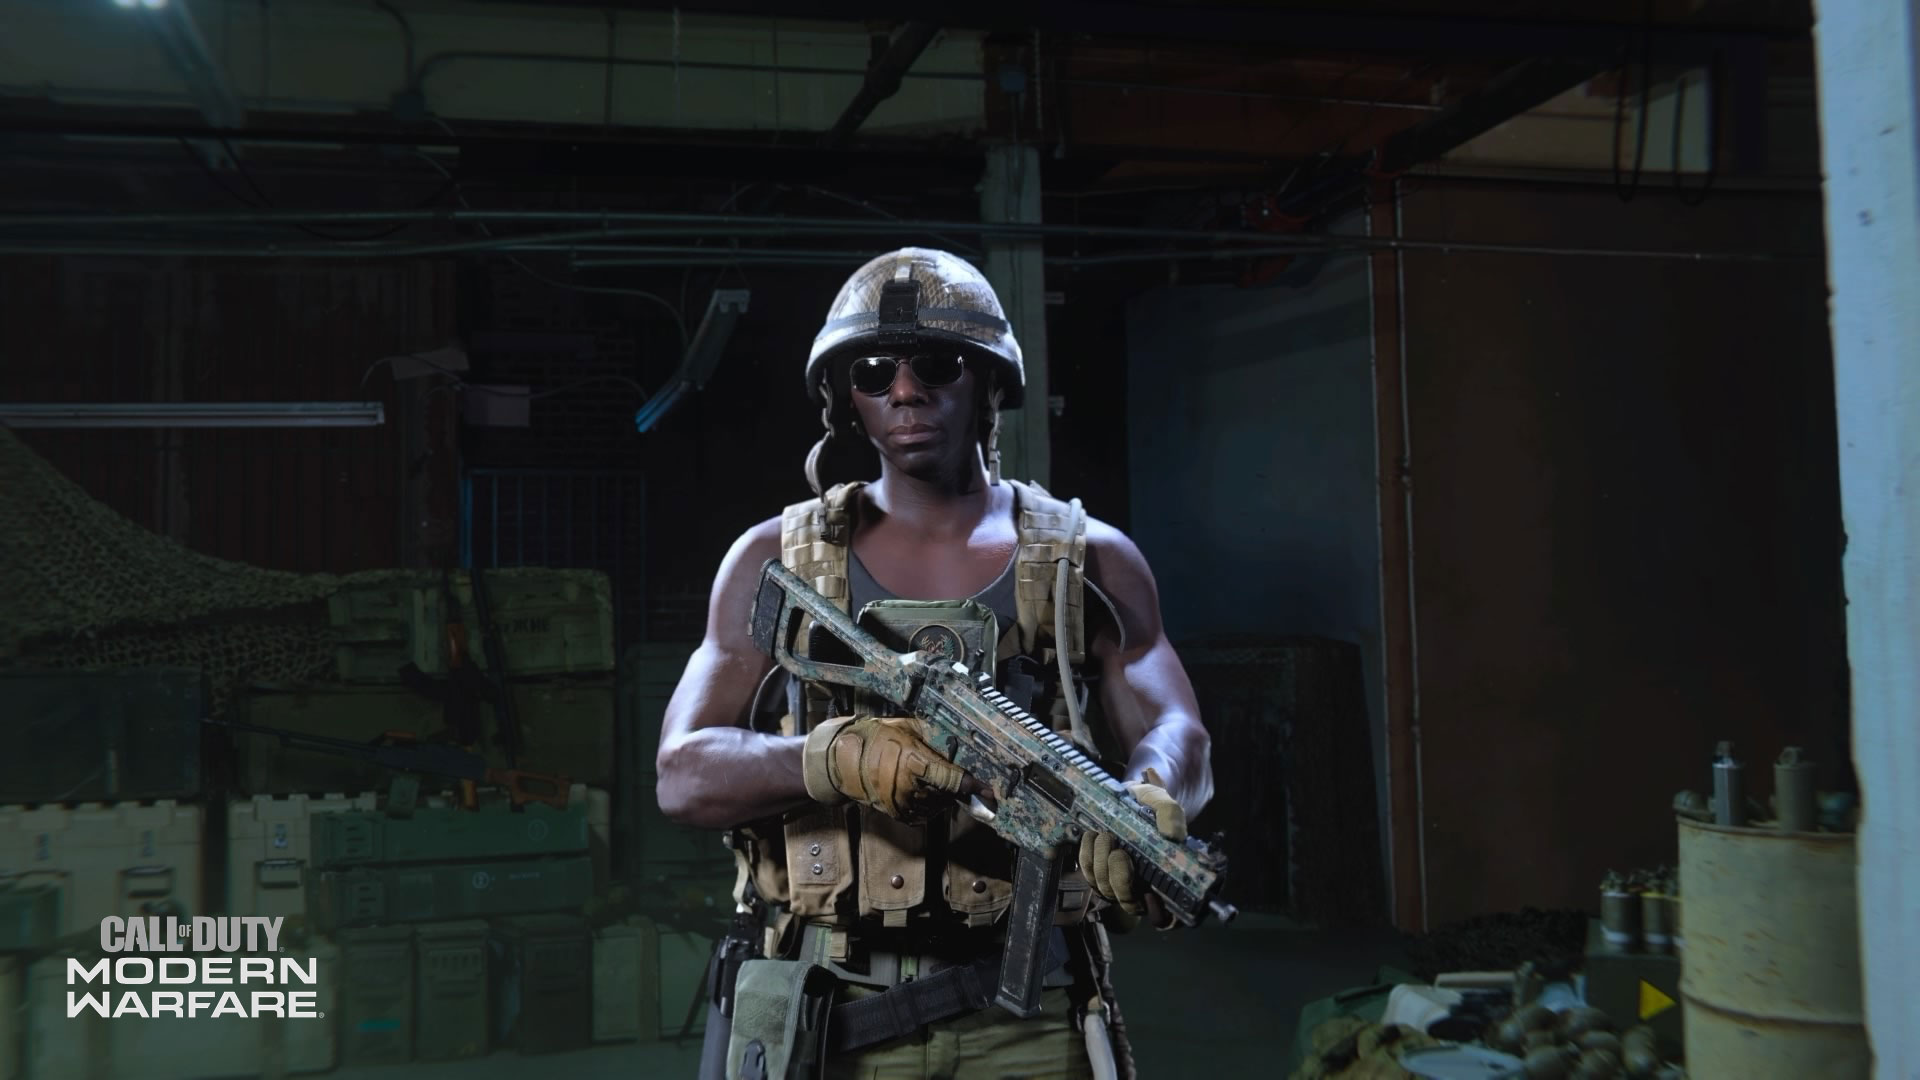 The Rank Up Report #16: Platinum SMGs, Operator Missions, and Loadout Updates - Image 3